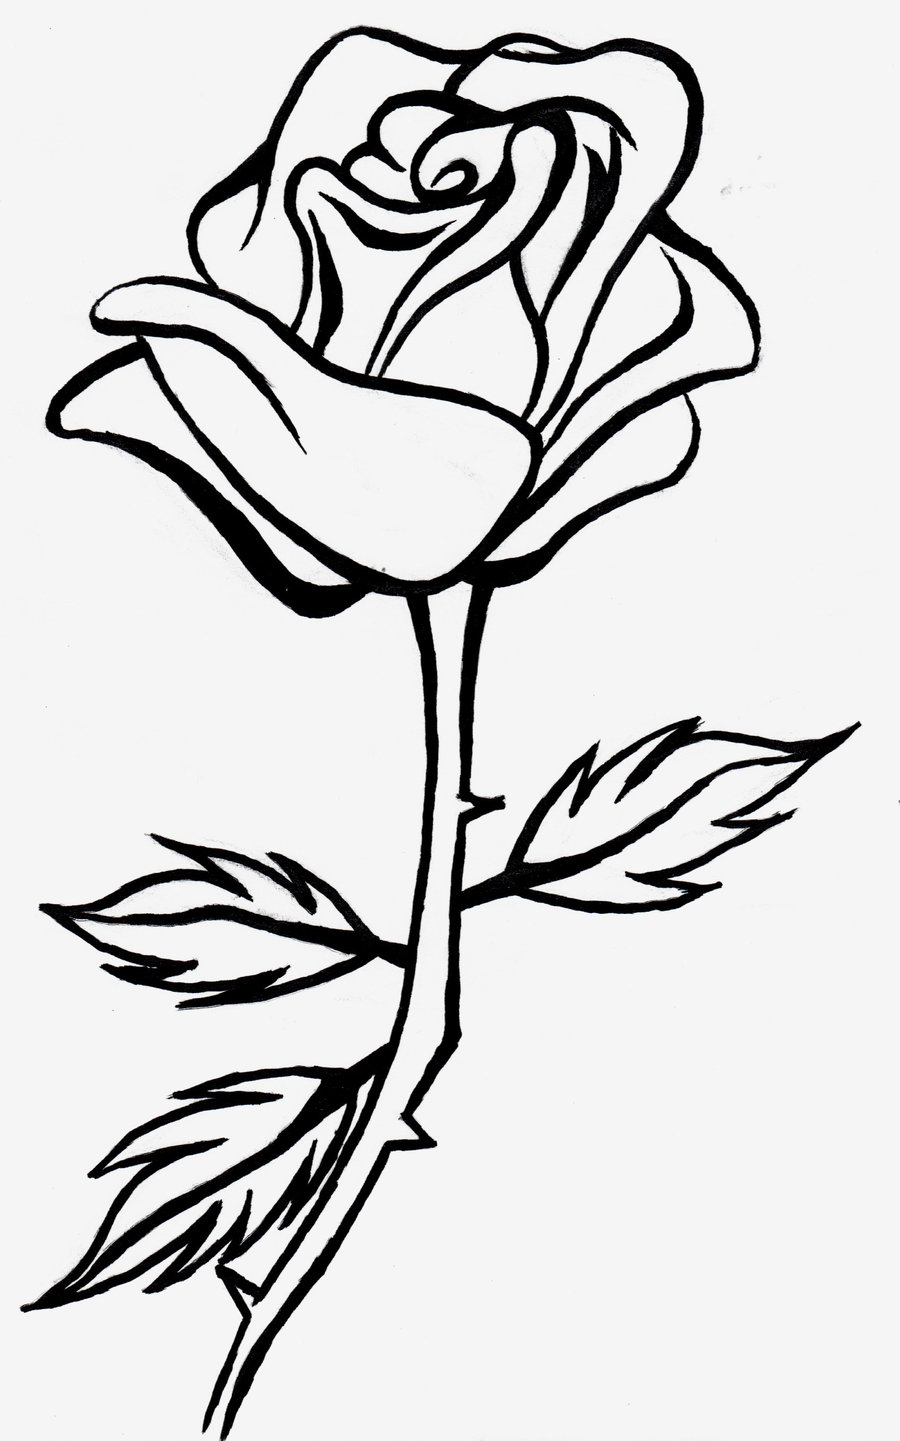 Black Rose Drawing - ClipArt Best